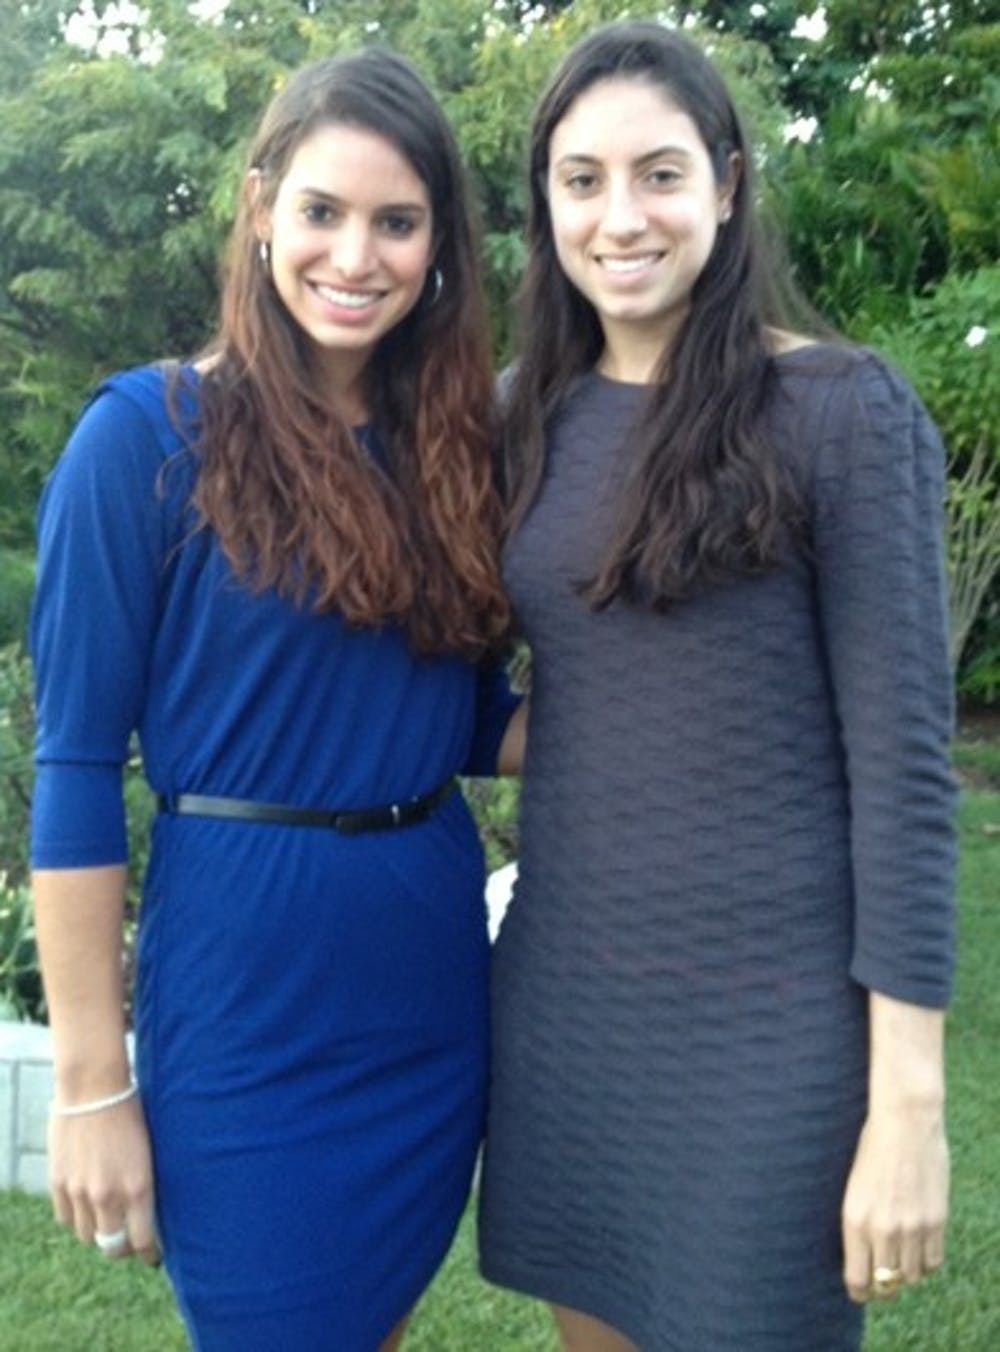 <p>Sisters Lauren and Christina McHale have played tennis since learning to play in 1995</p>